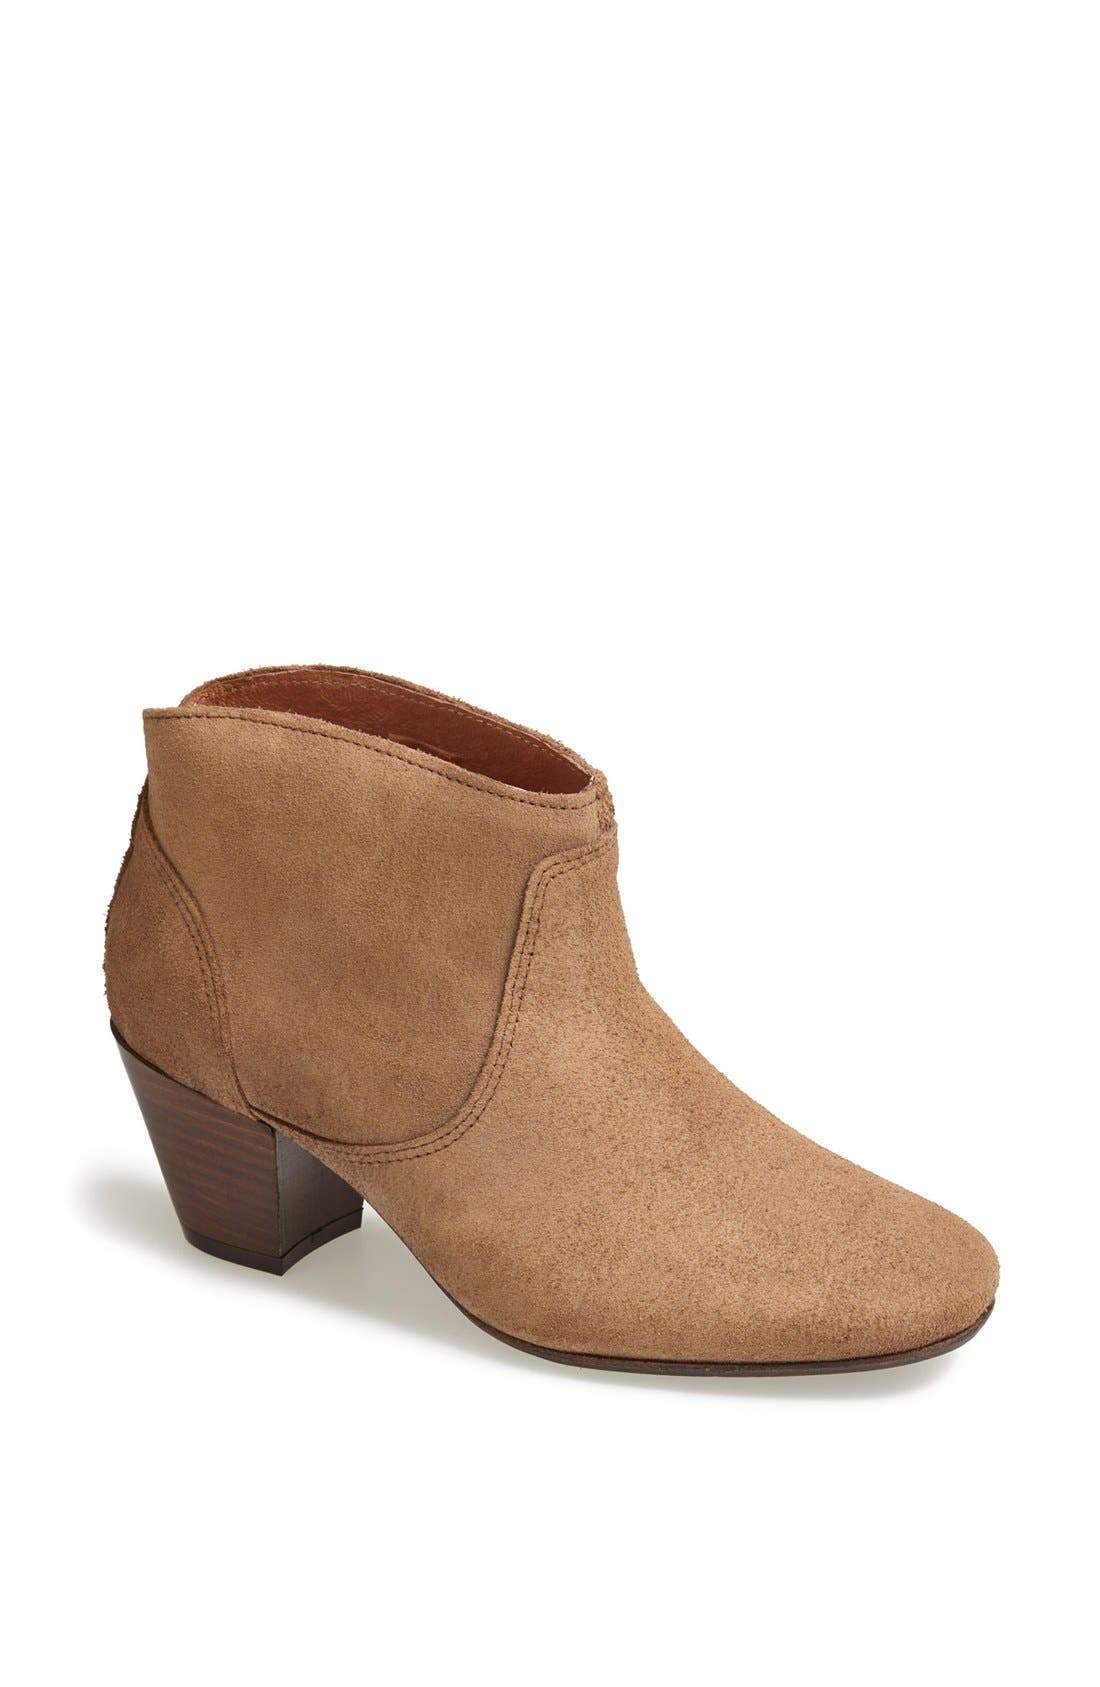 Alternate Image 1 Selected - H by Hudson 'Mirar' Suede Bootie